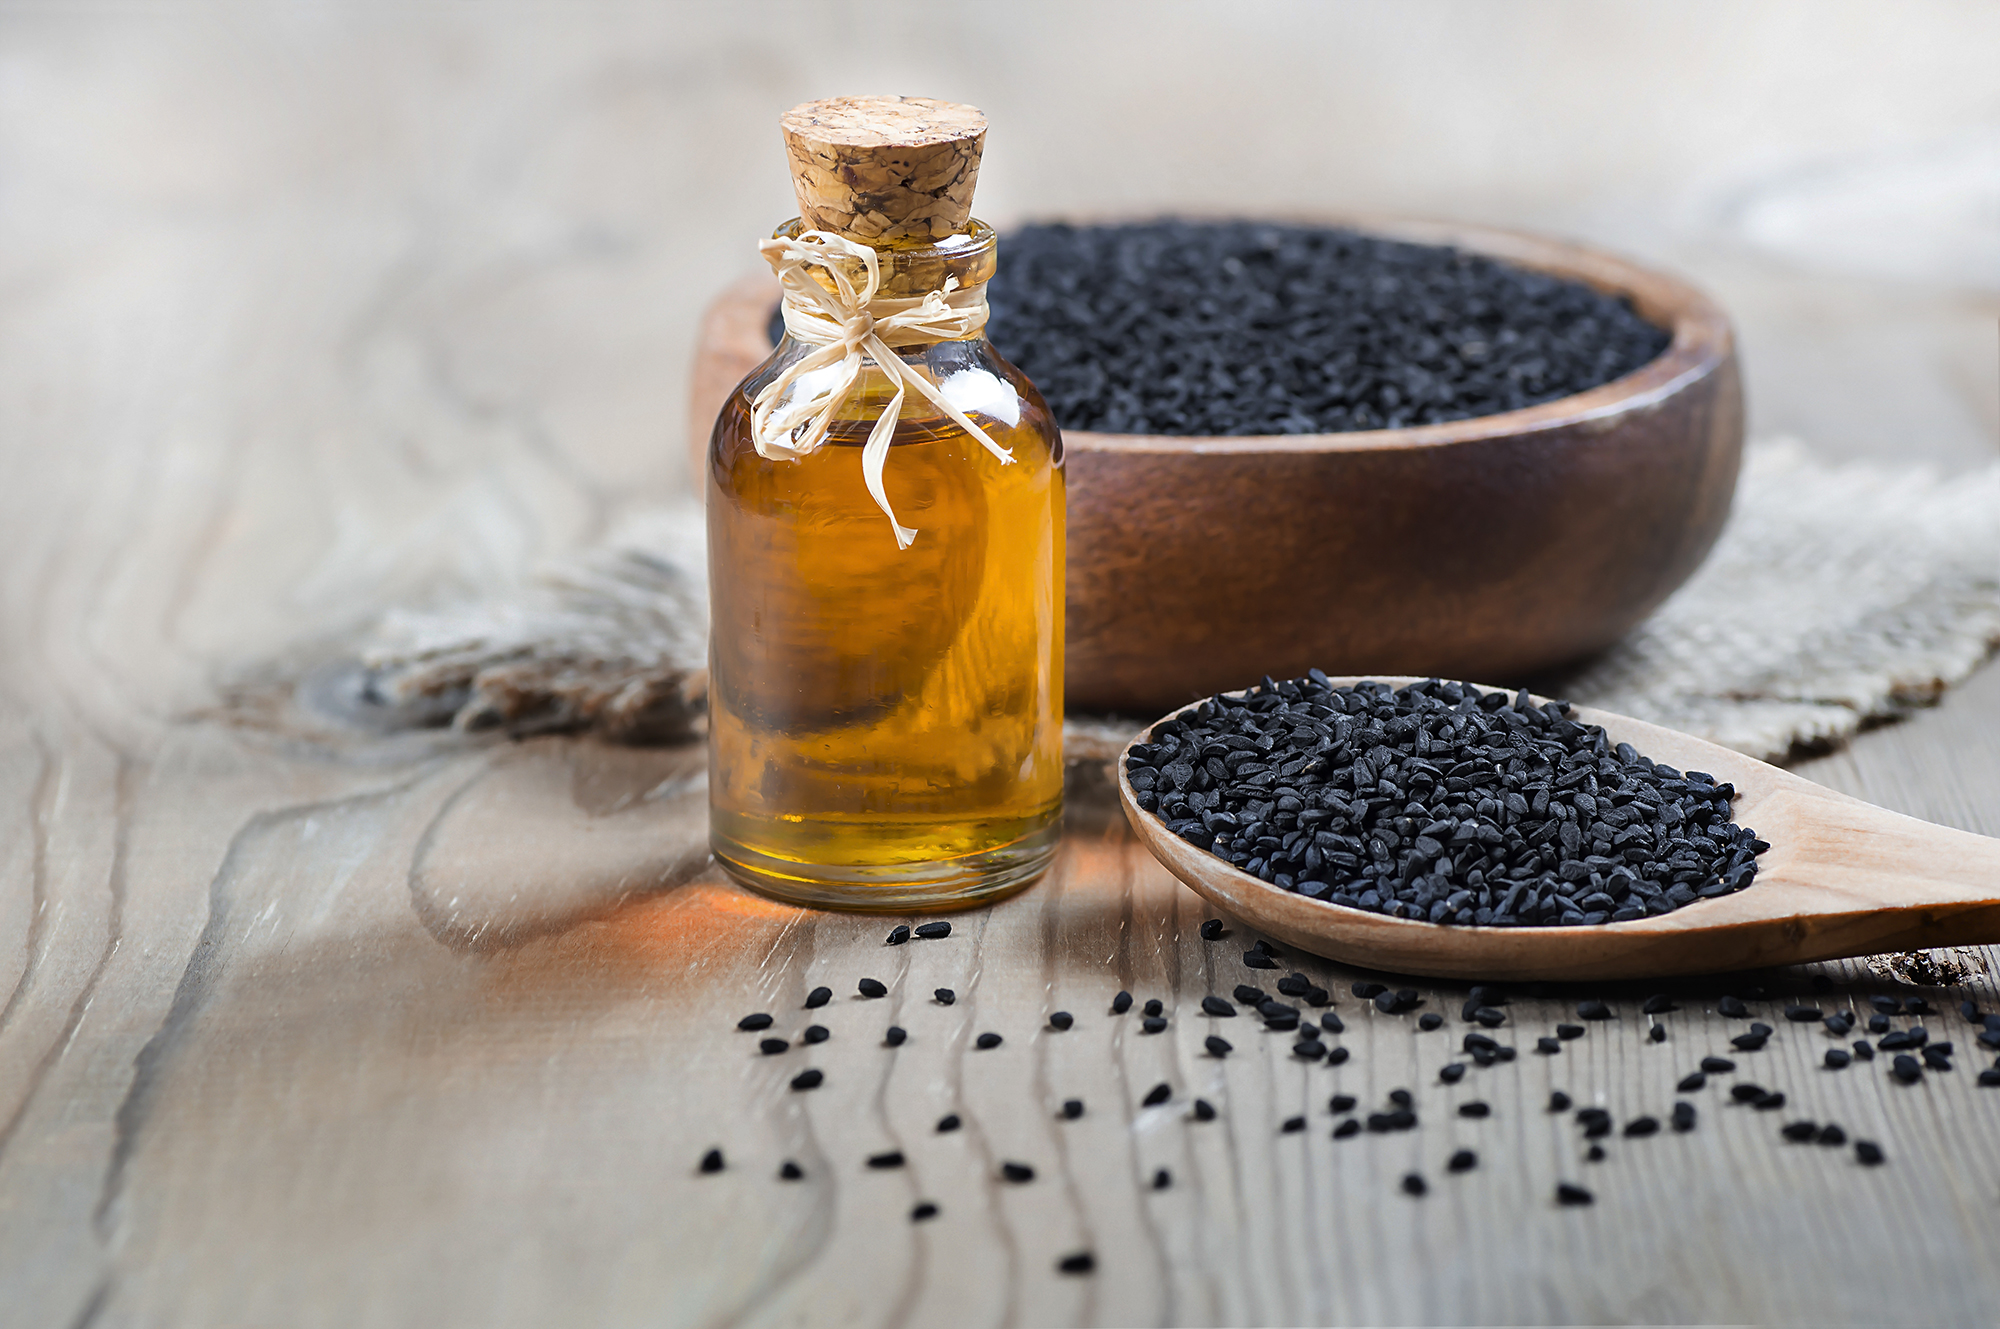 Could Black Cumin Seed Help with COVID 19